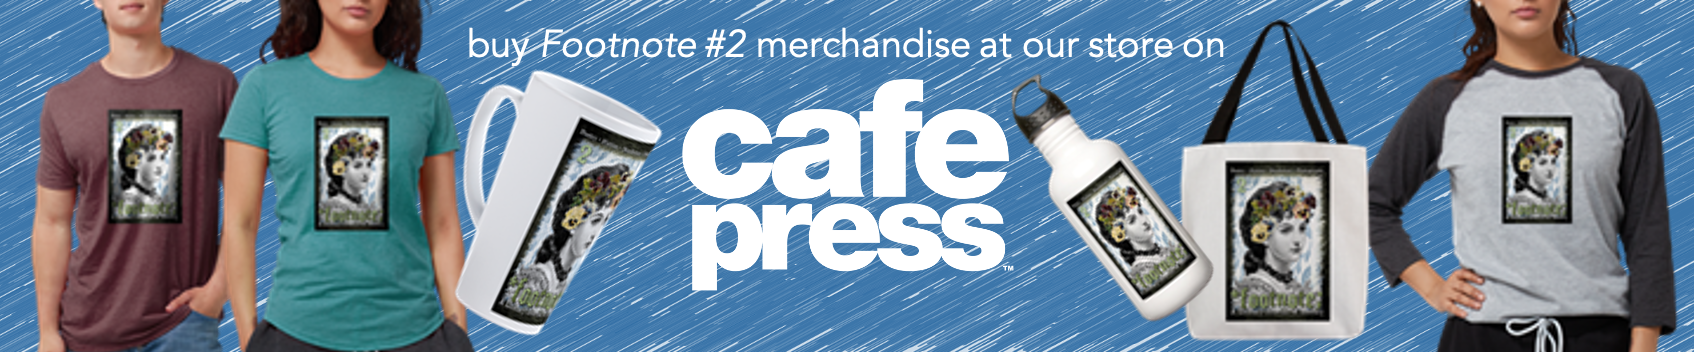 Buy Footnote 2 merchandise at Cafe Press